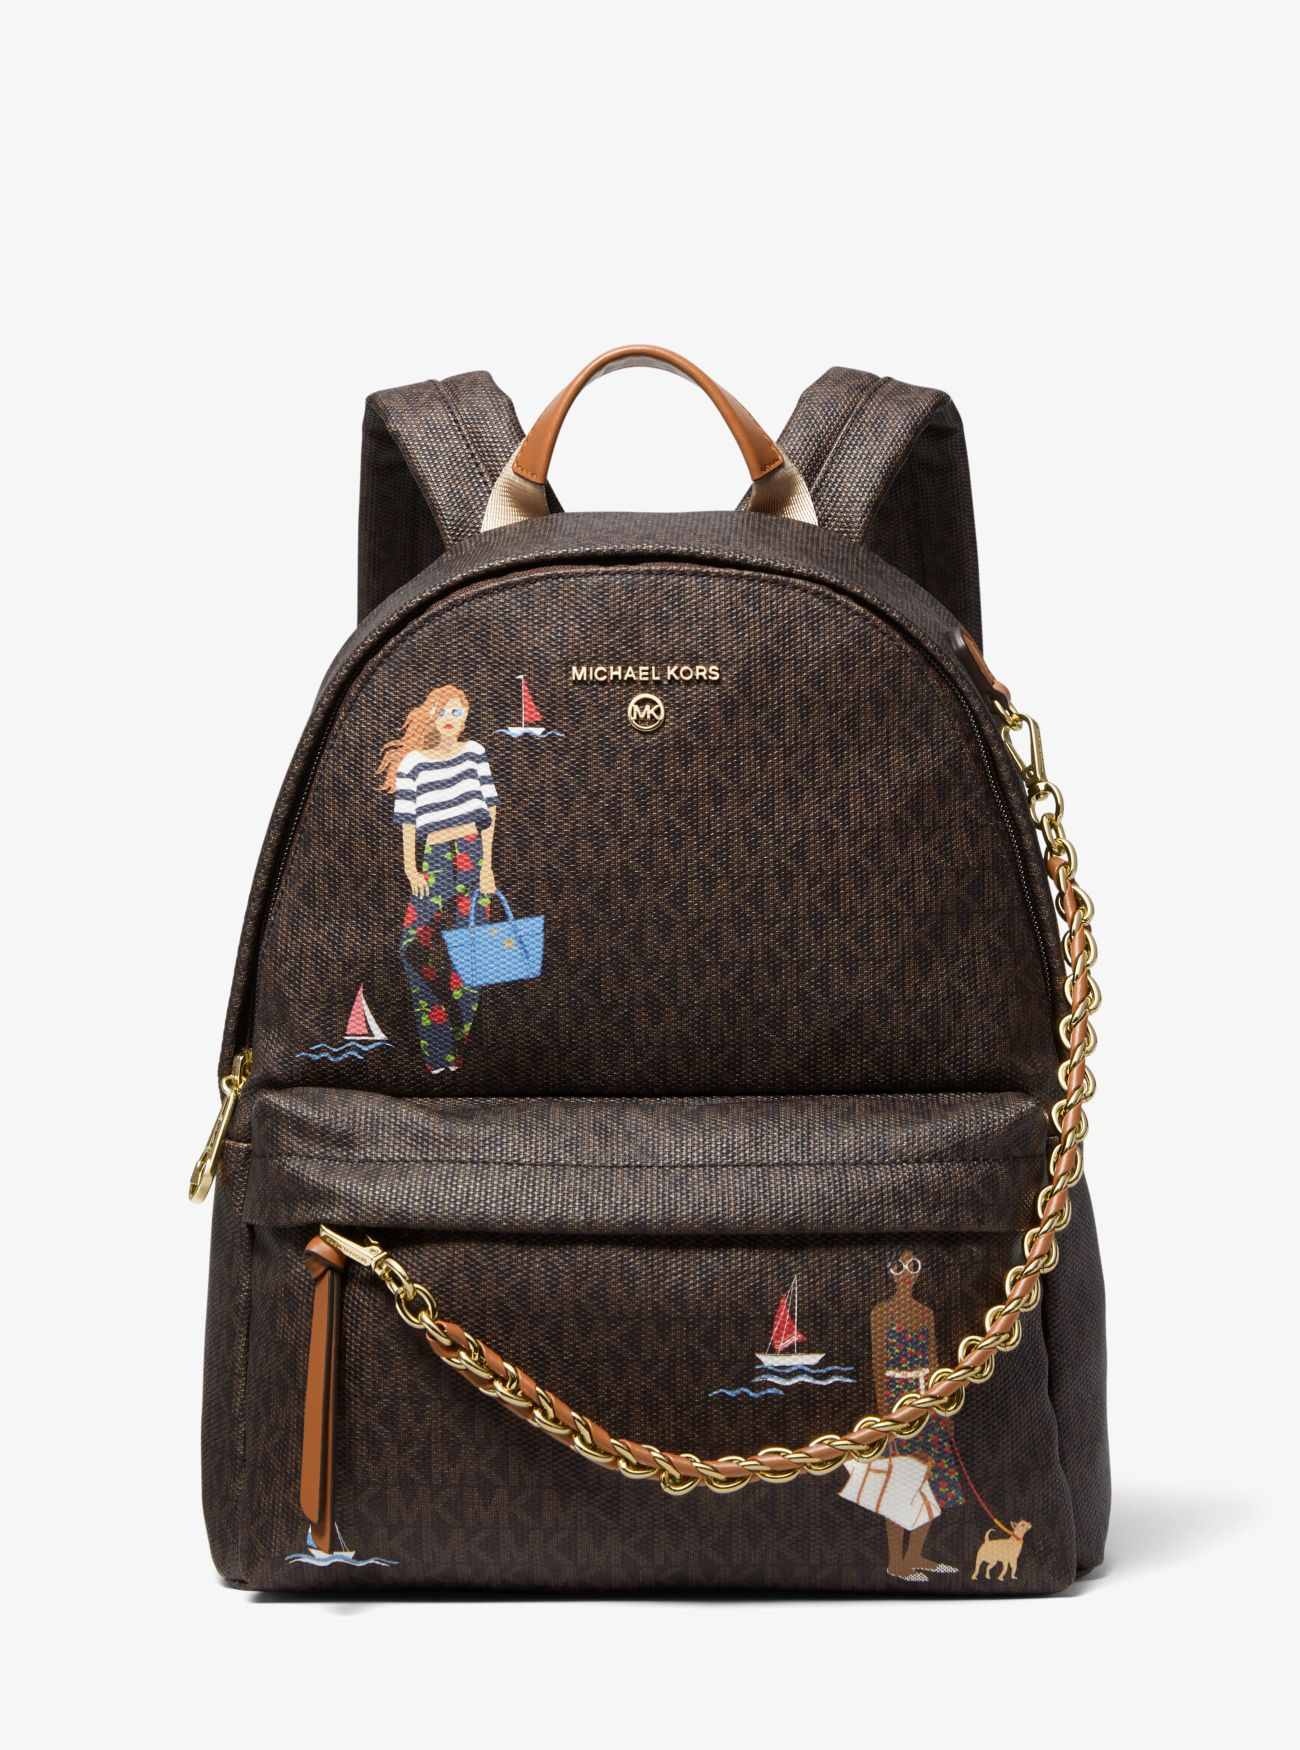 Mochila Michael Kors Jet Set Girls marrón